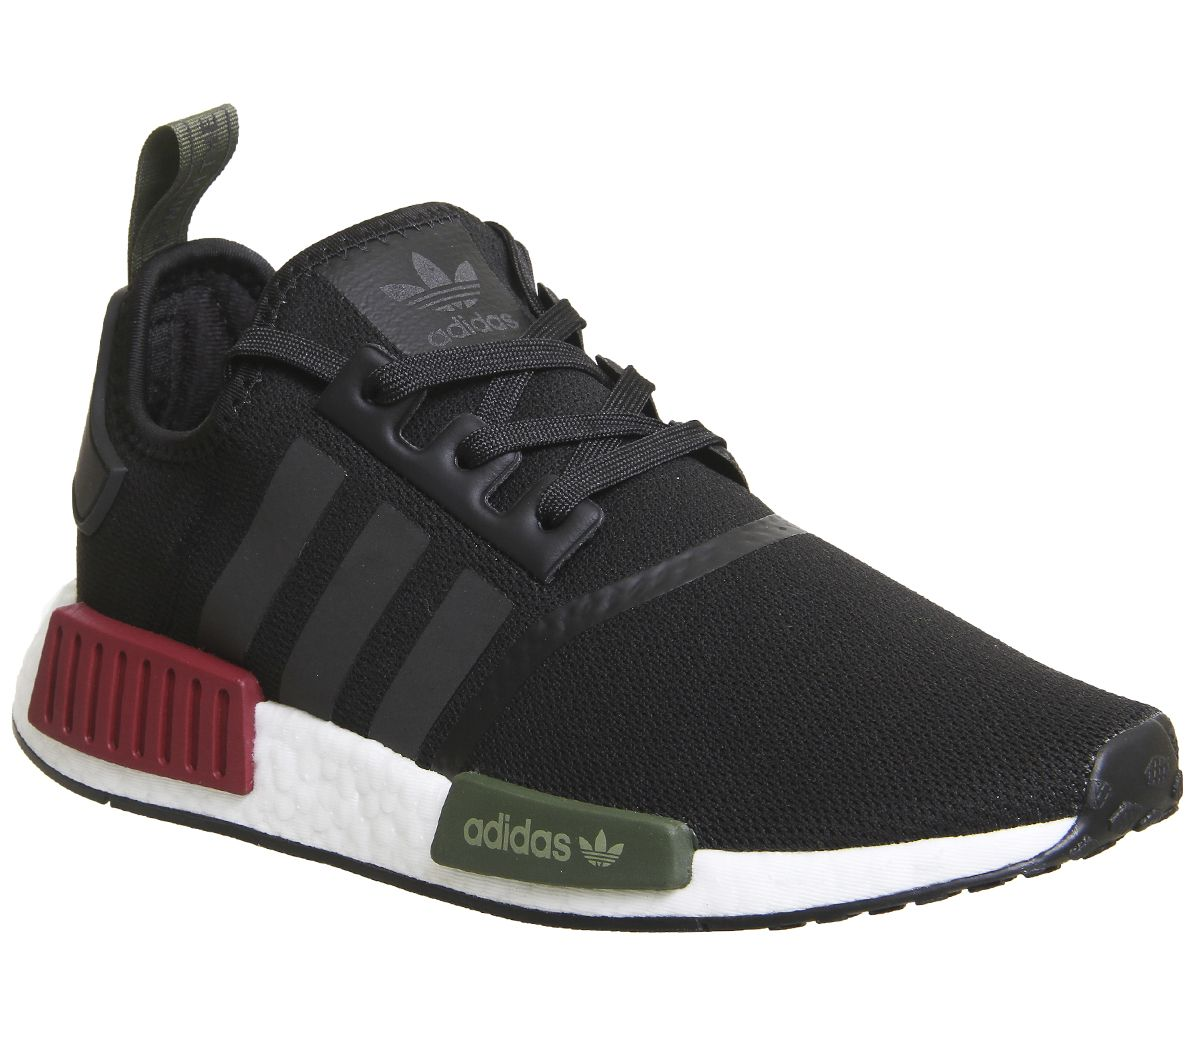 quality design 28da9 9a689 Nmd R1 Trainers